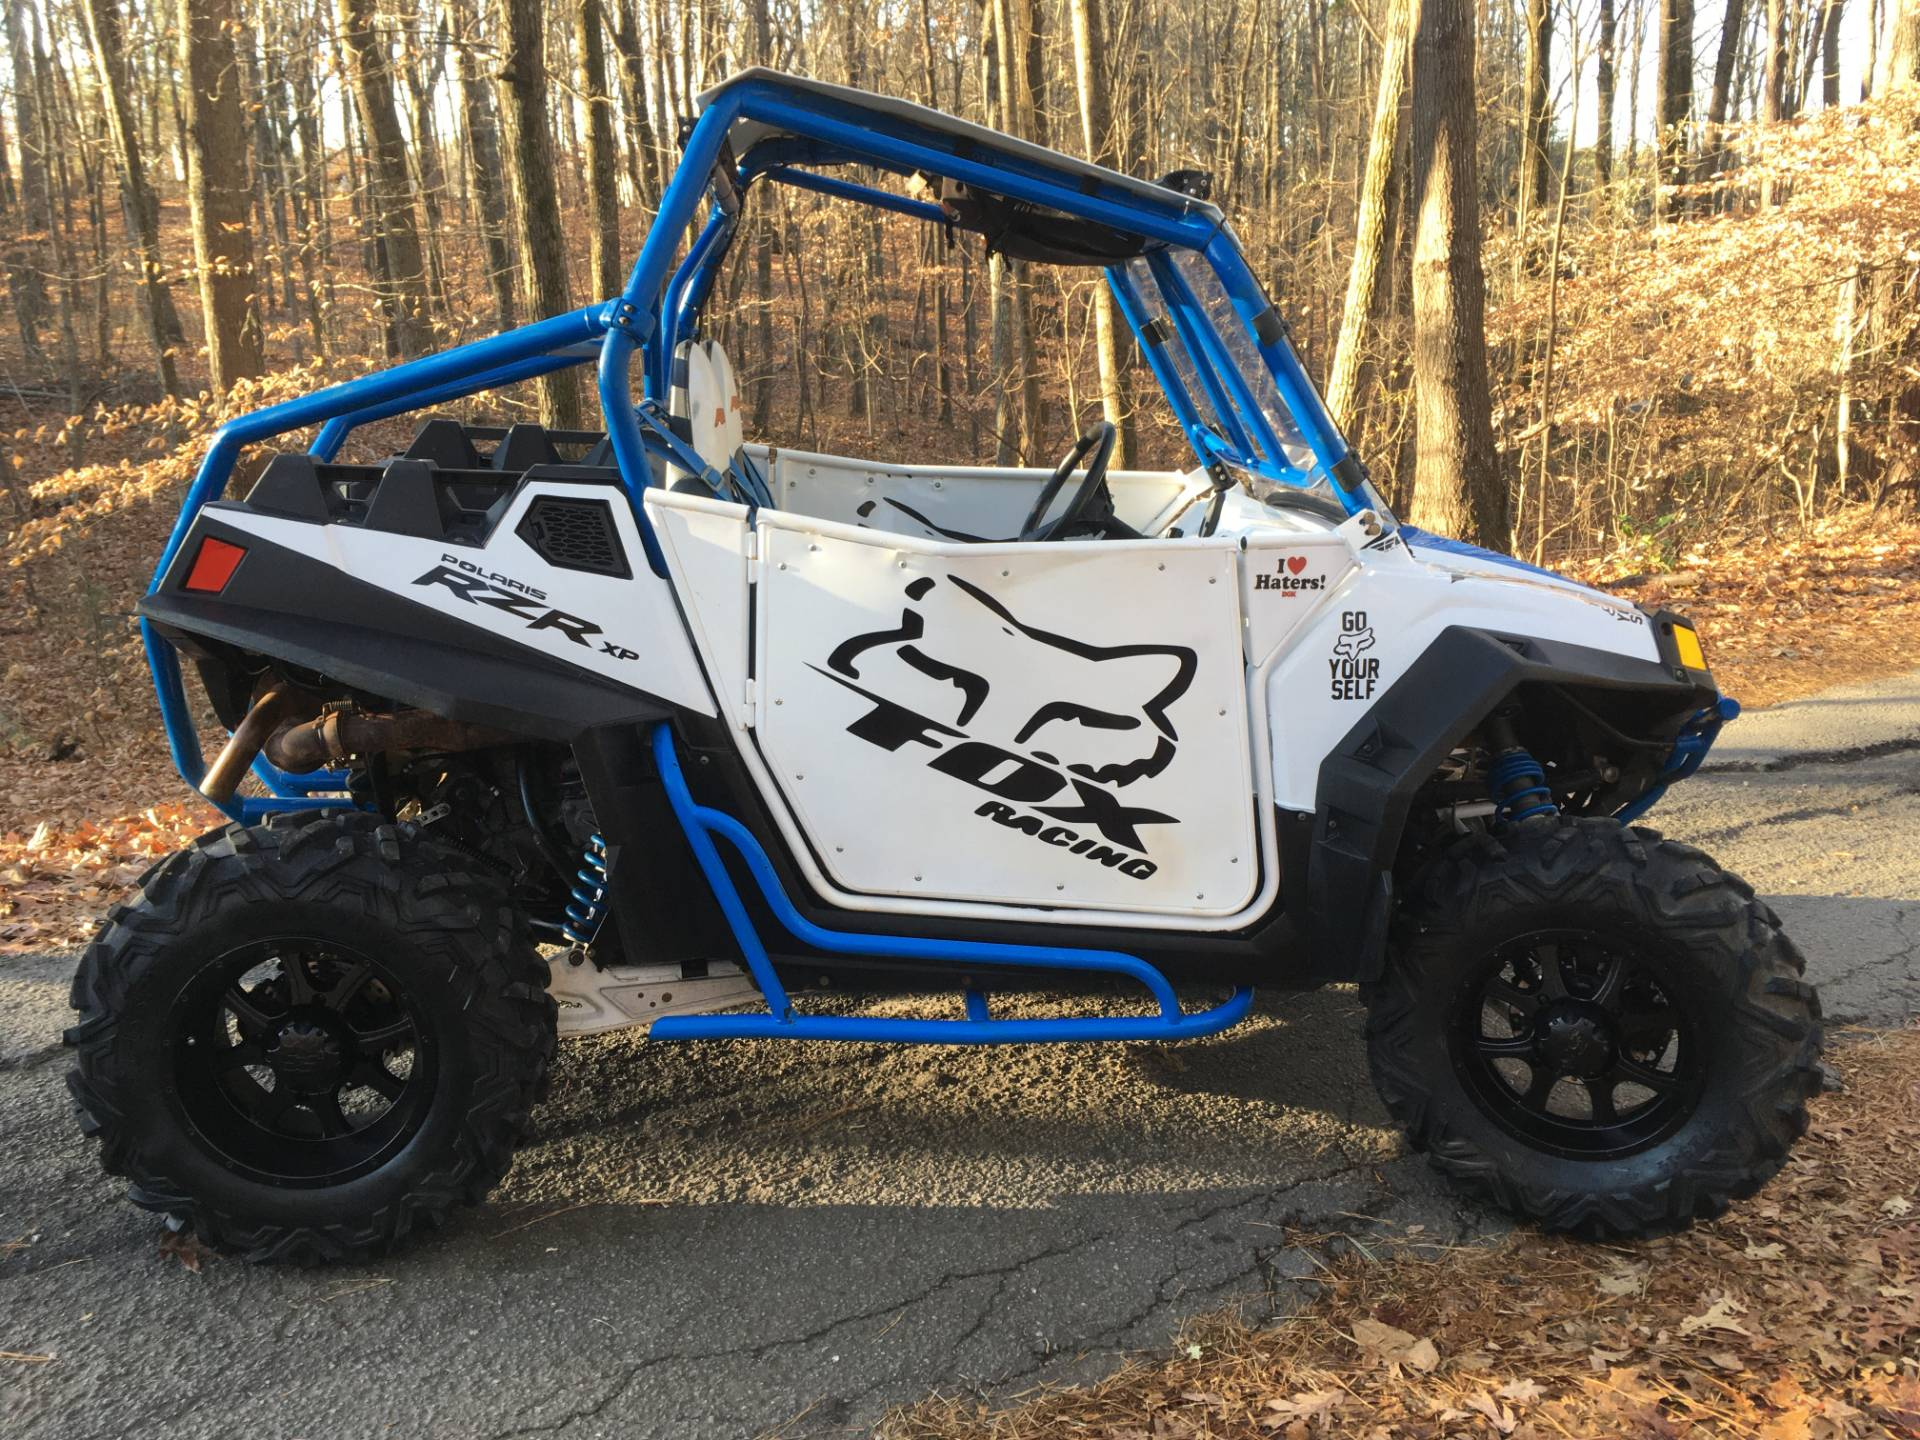 2012 POLARIS RZR 900 XP in Woodstock, Georgia - Photo 5